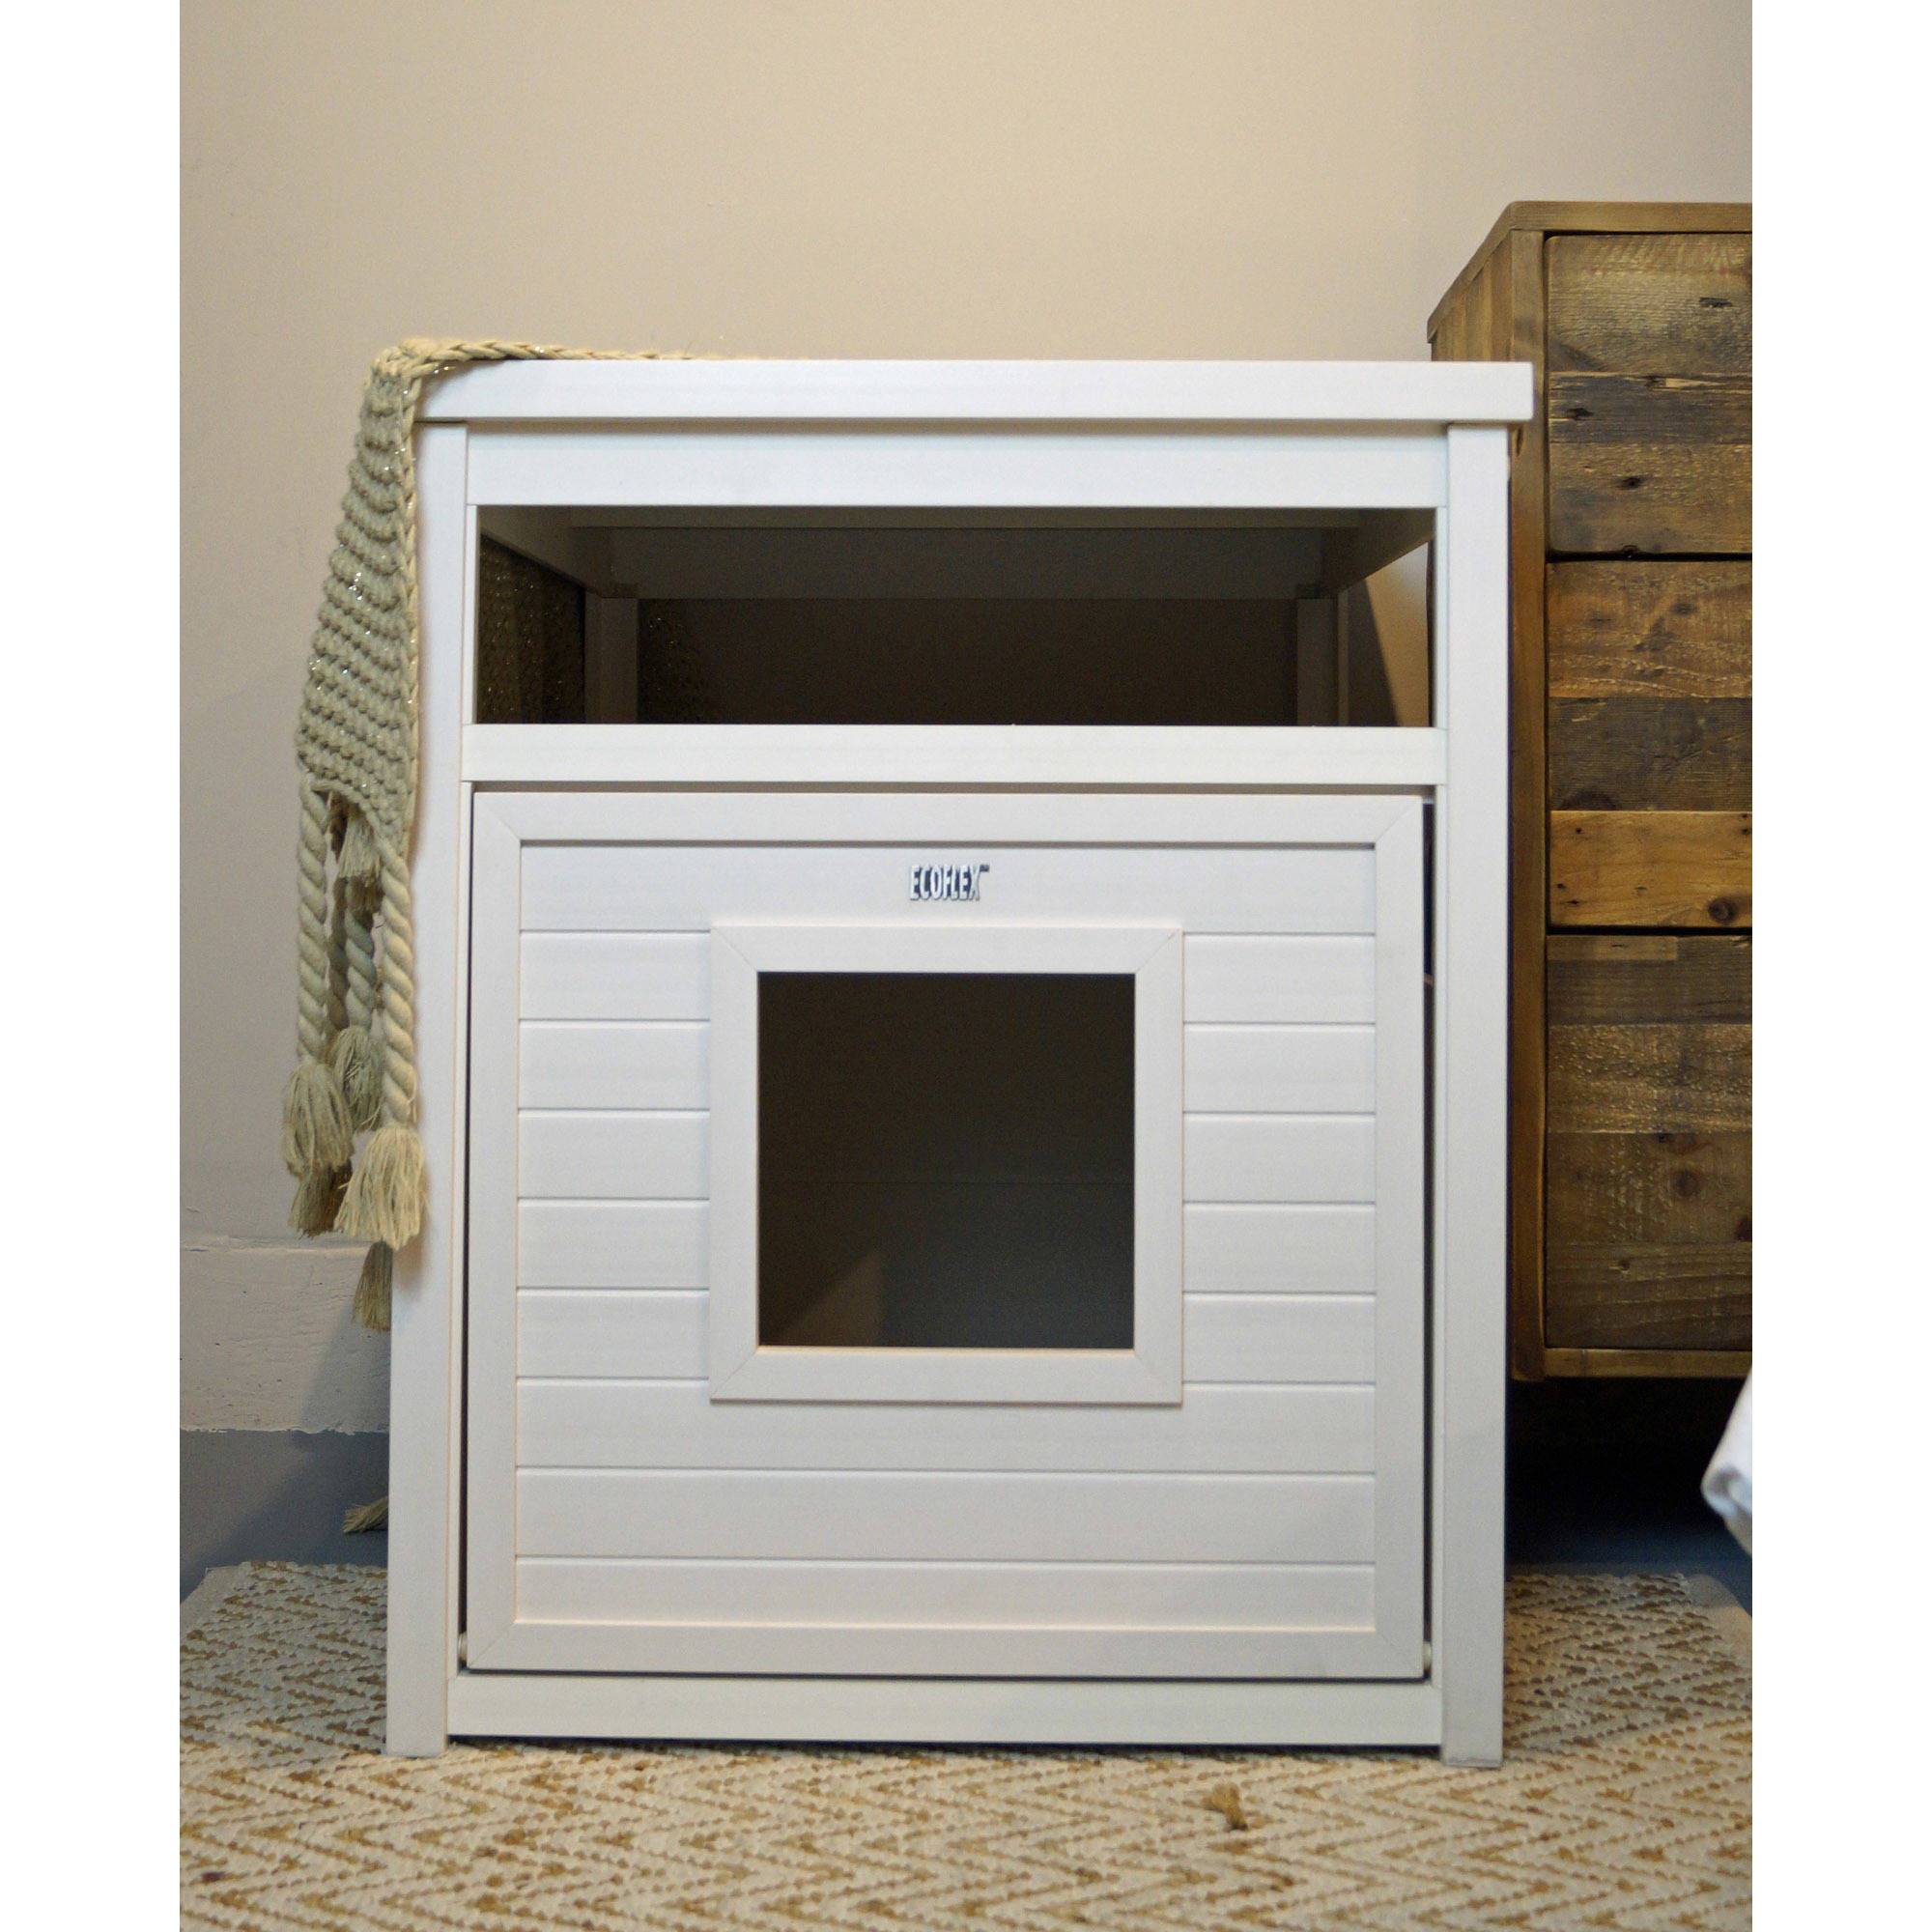 ecoFLEX Jumbo Covered Cat Litter Box, Cover/End Table - Antique White